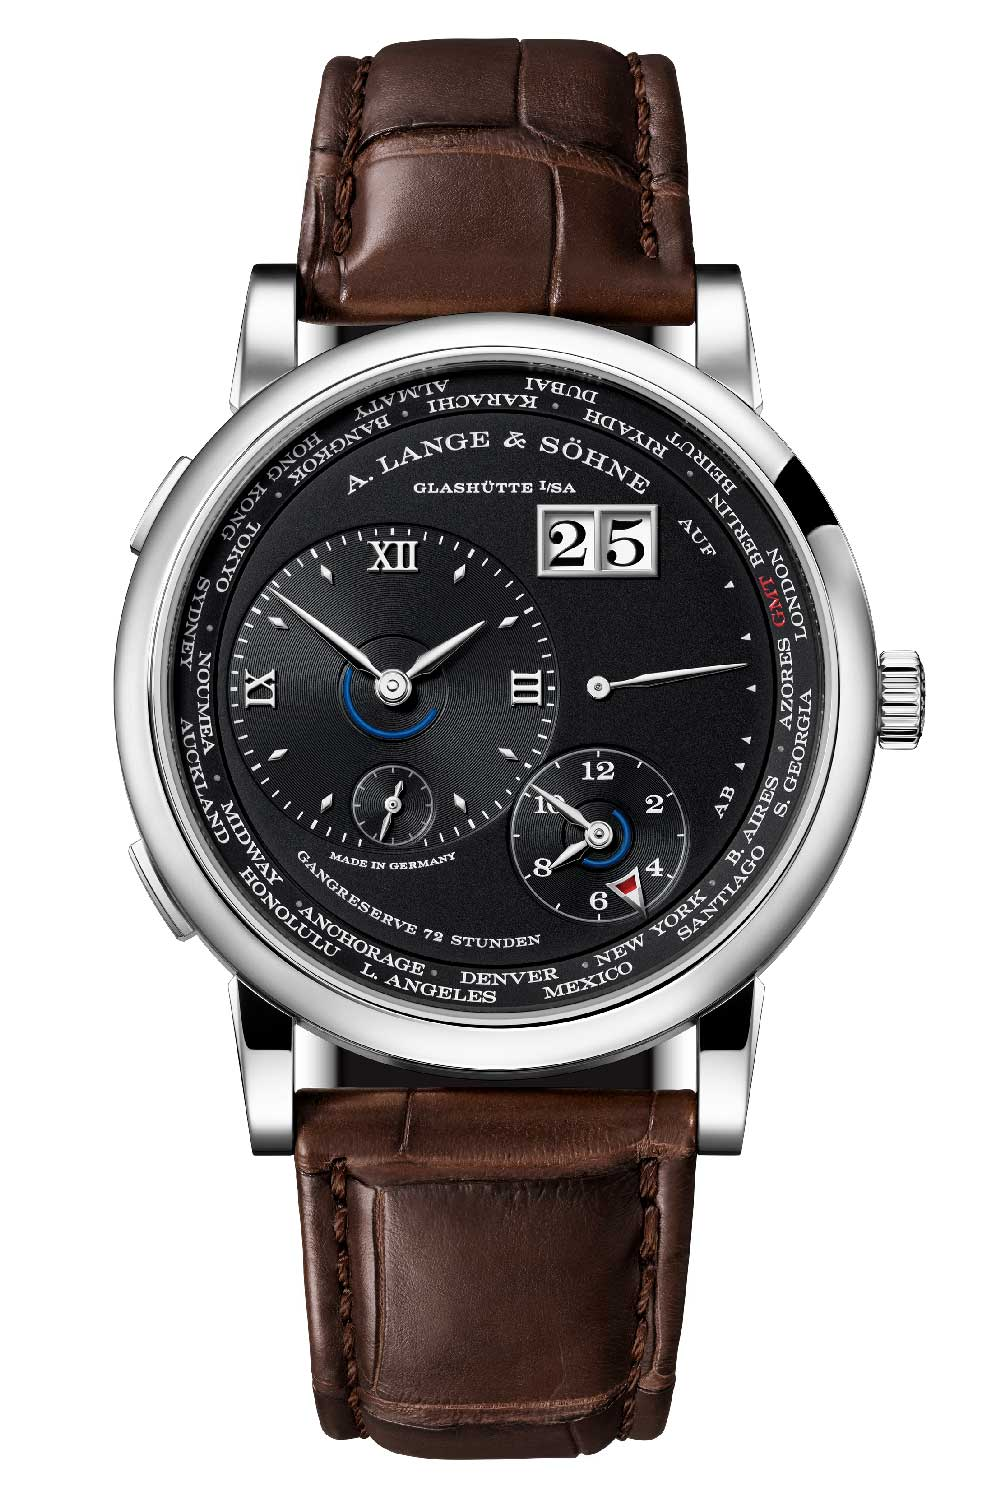 The new Lange 1 Time Zone in solid silver argenté dial